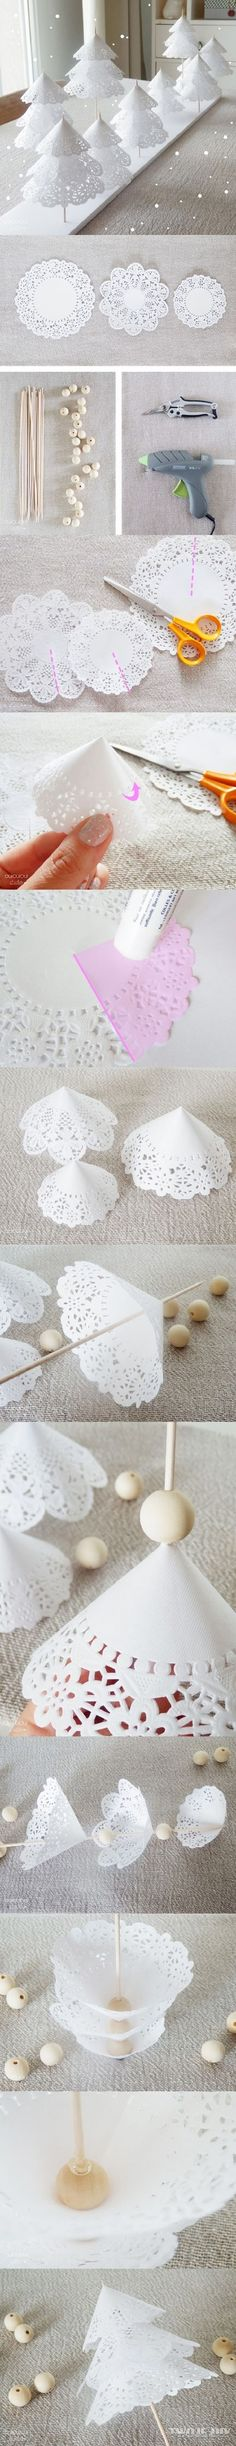 I love these paper doilies Christmas trees and they are super easy to make. Cute centerpiece idea!